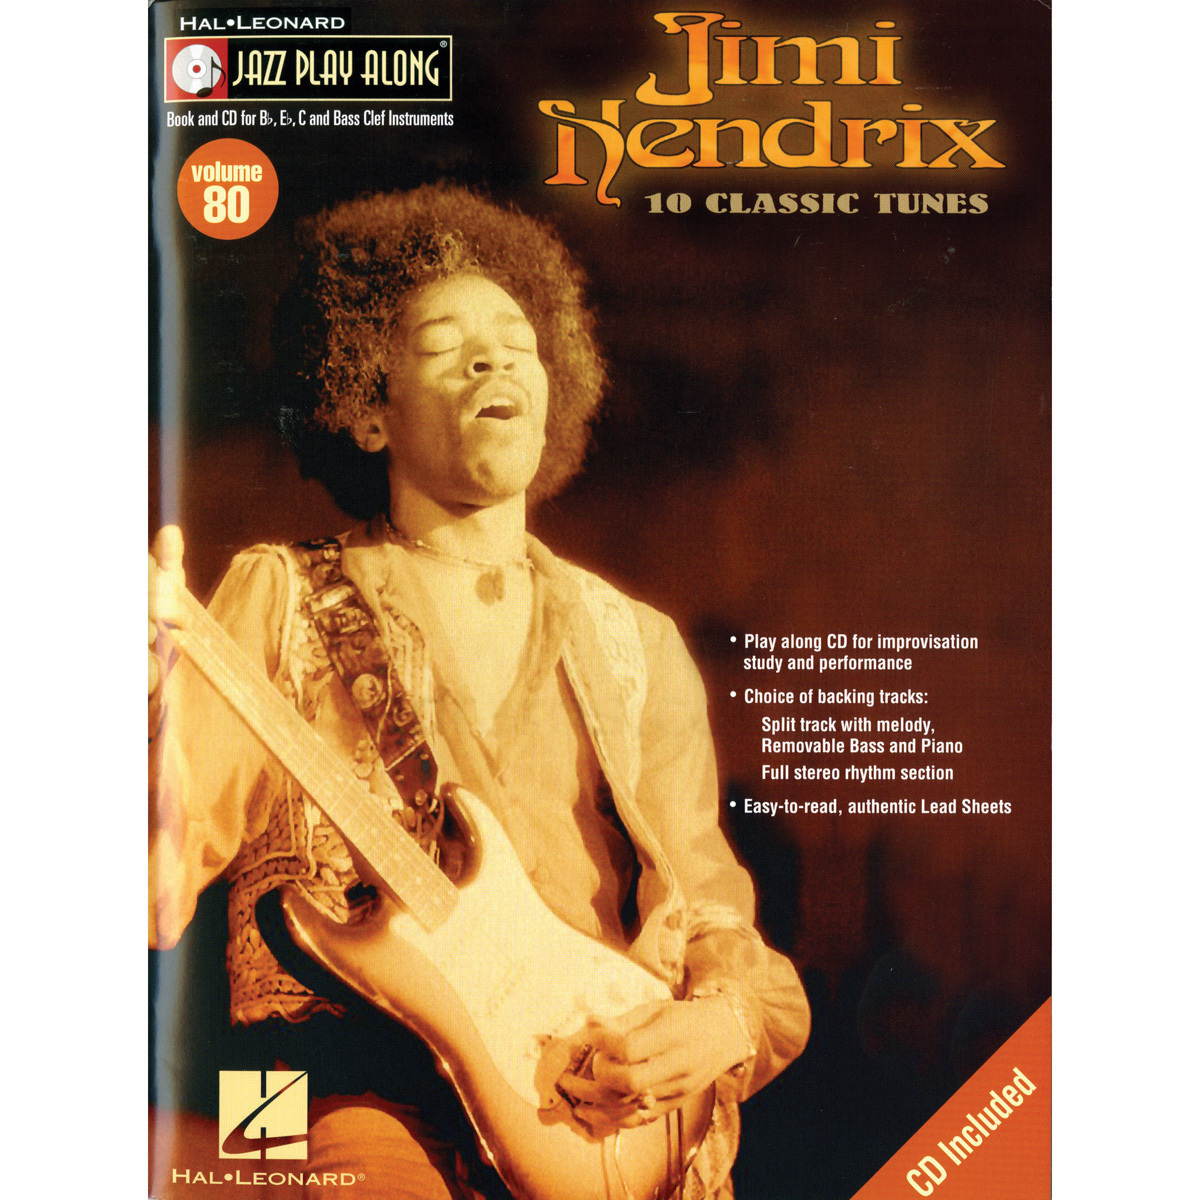 Jimi Hendrix Jazz Play Along Songbook, Vol. 80 with CD